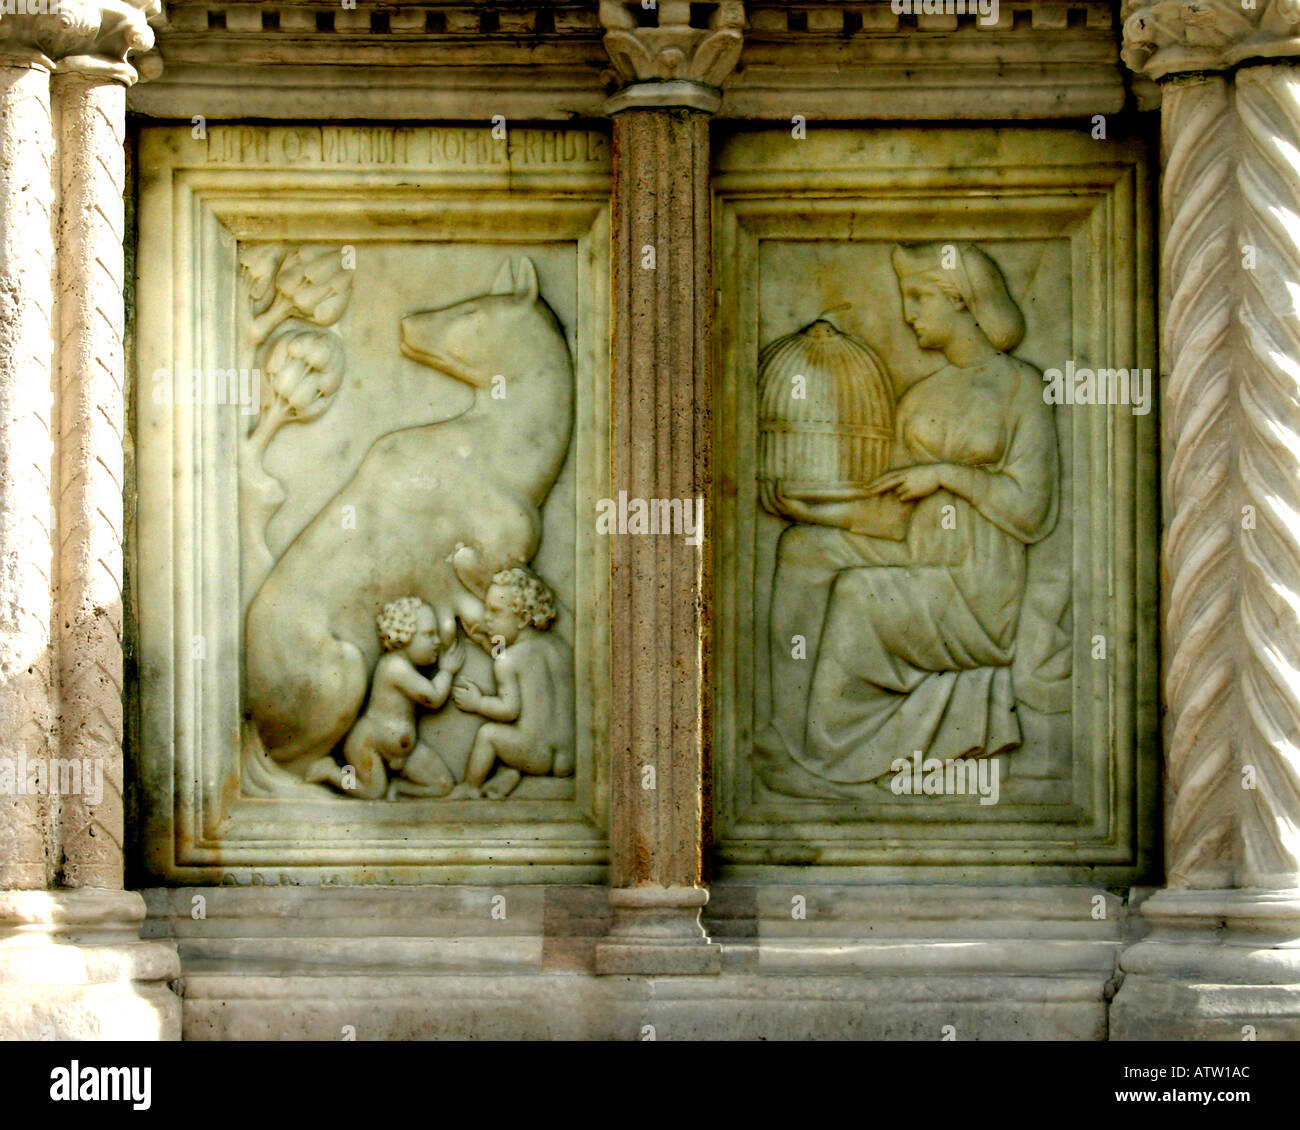 Panel from Fontana Maggiore Perugia Italy Romulus and Remus - Stock Image